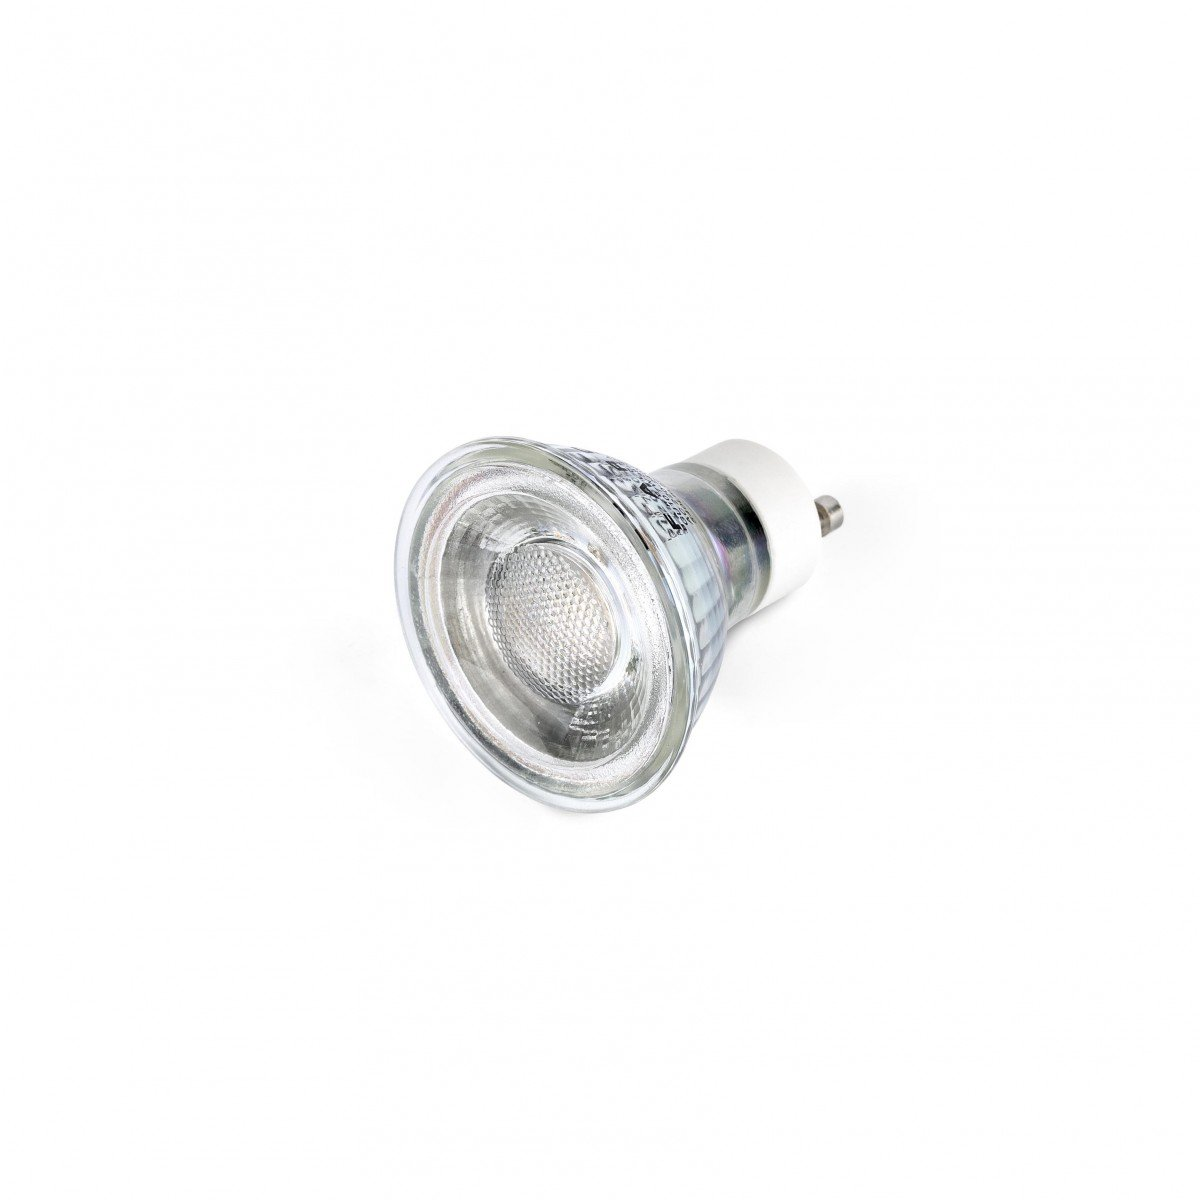 Las Bombillas Led Faro Bombilla Gu10 Led 7w 38º Cristal Bombillas Gu10 Led Bombillas Led